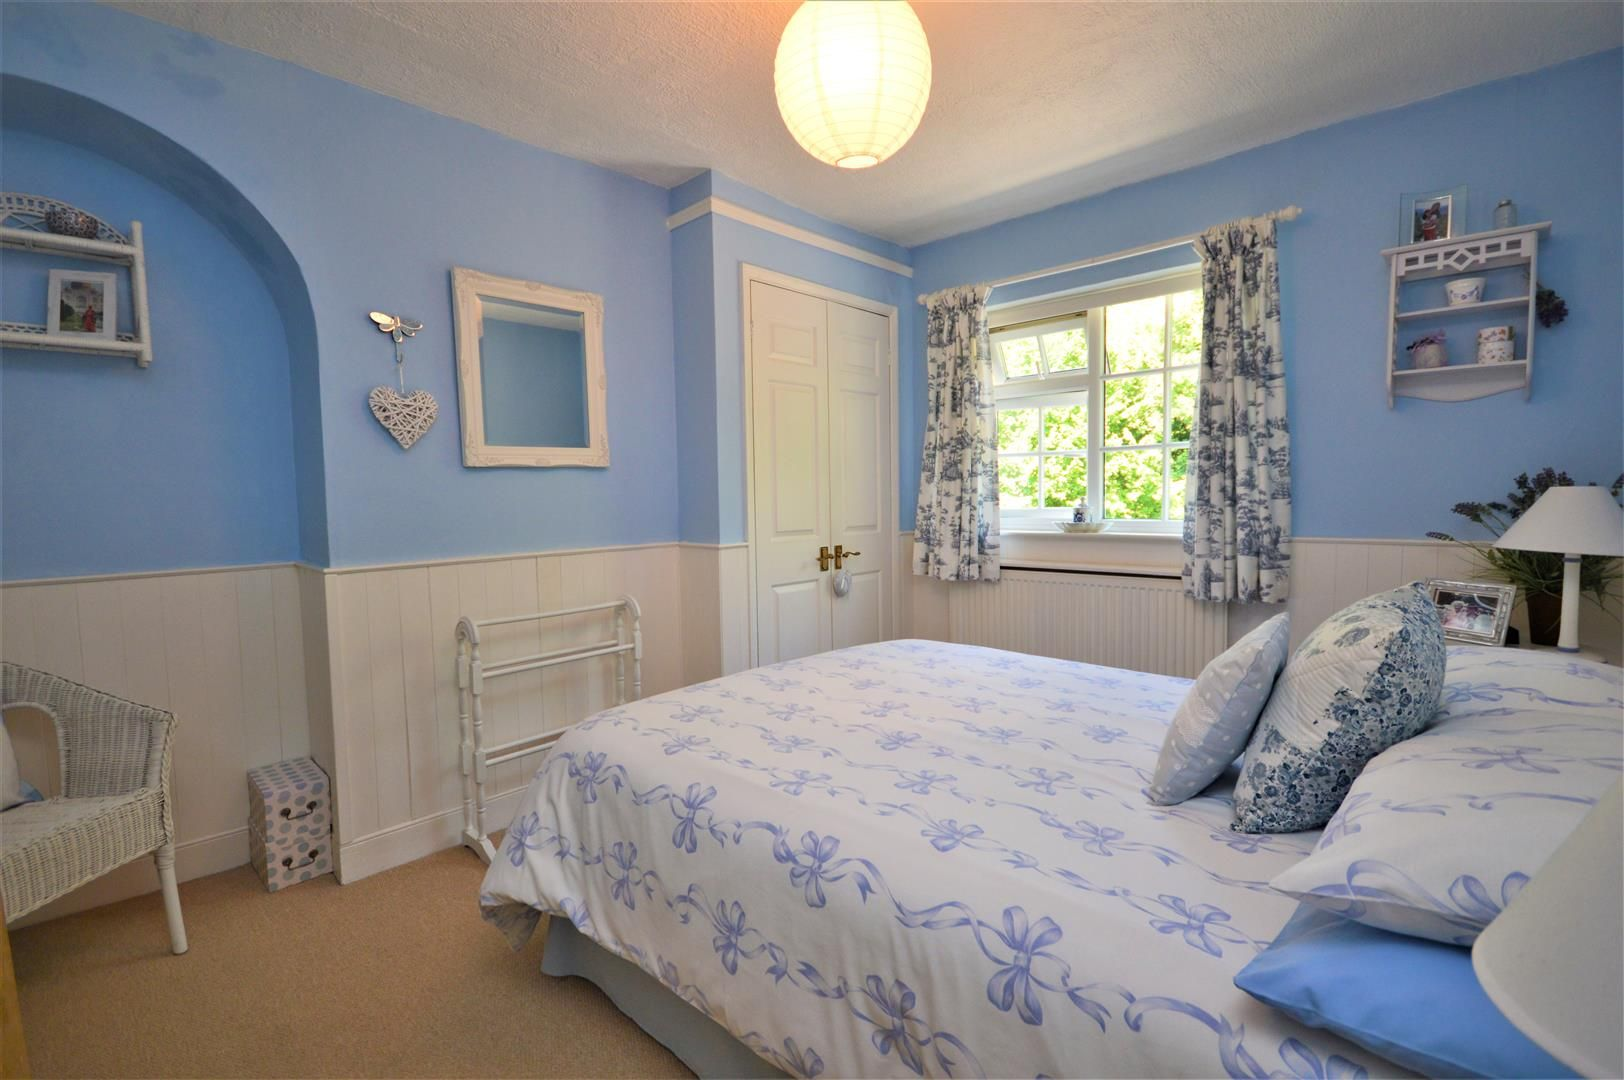 3 bed semi-detached for sale in Madley  - Property Image 11